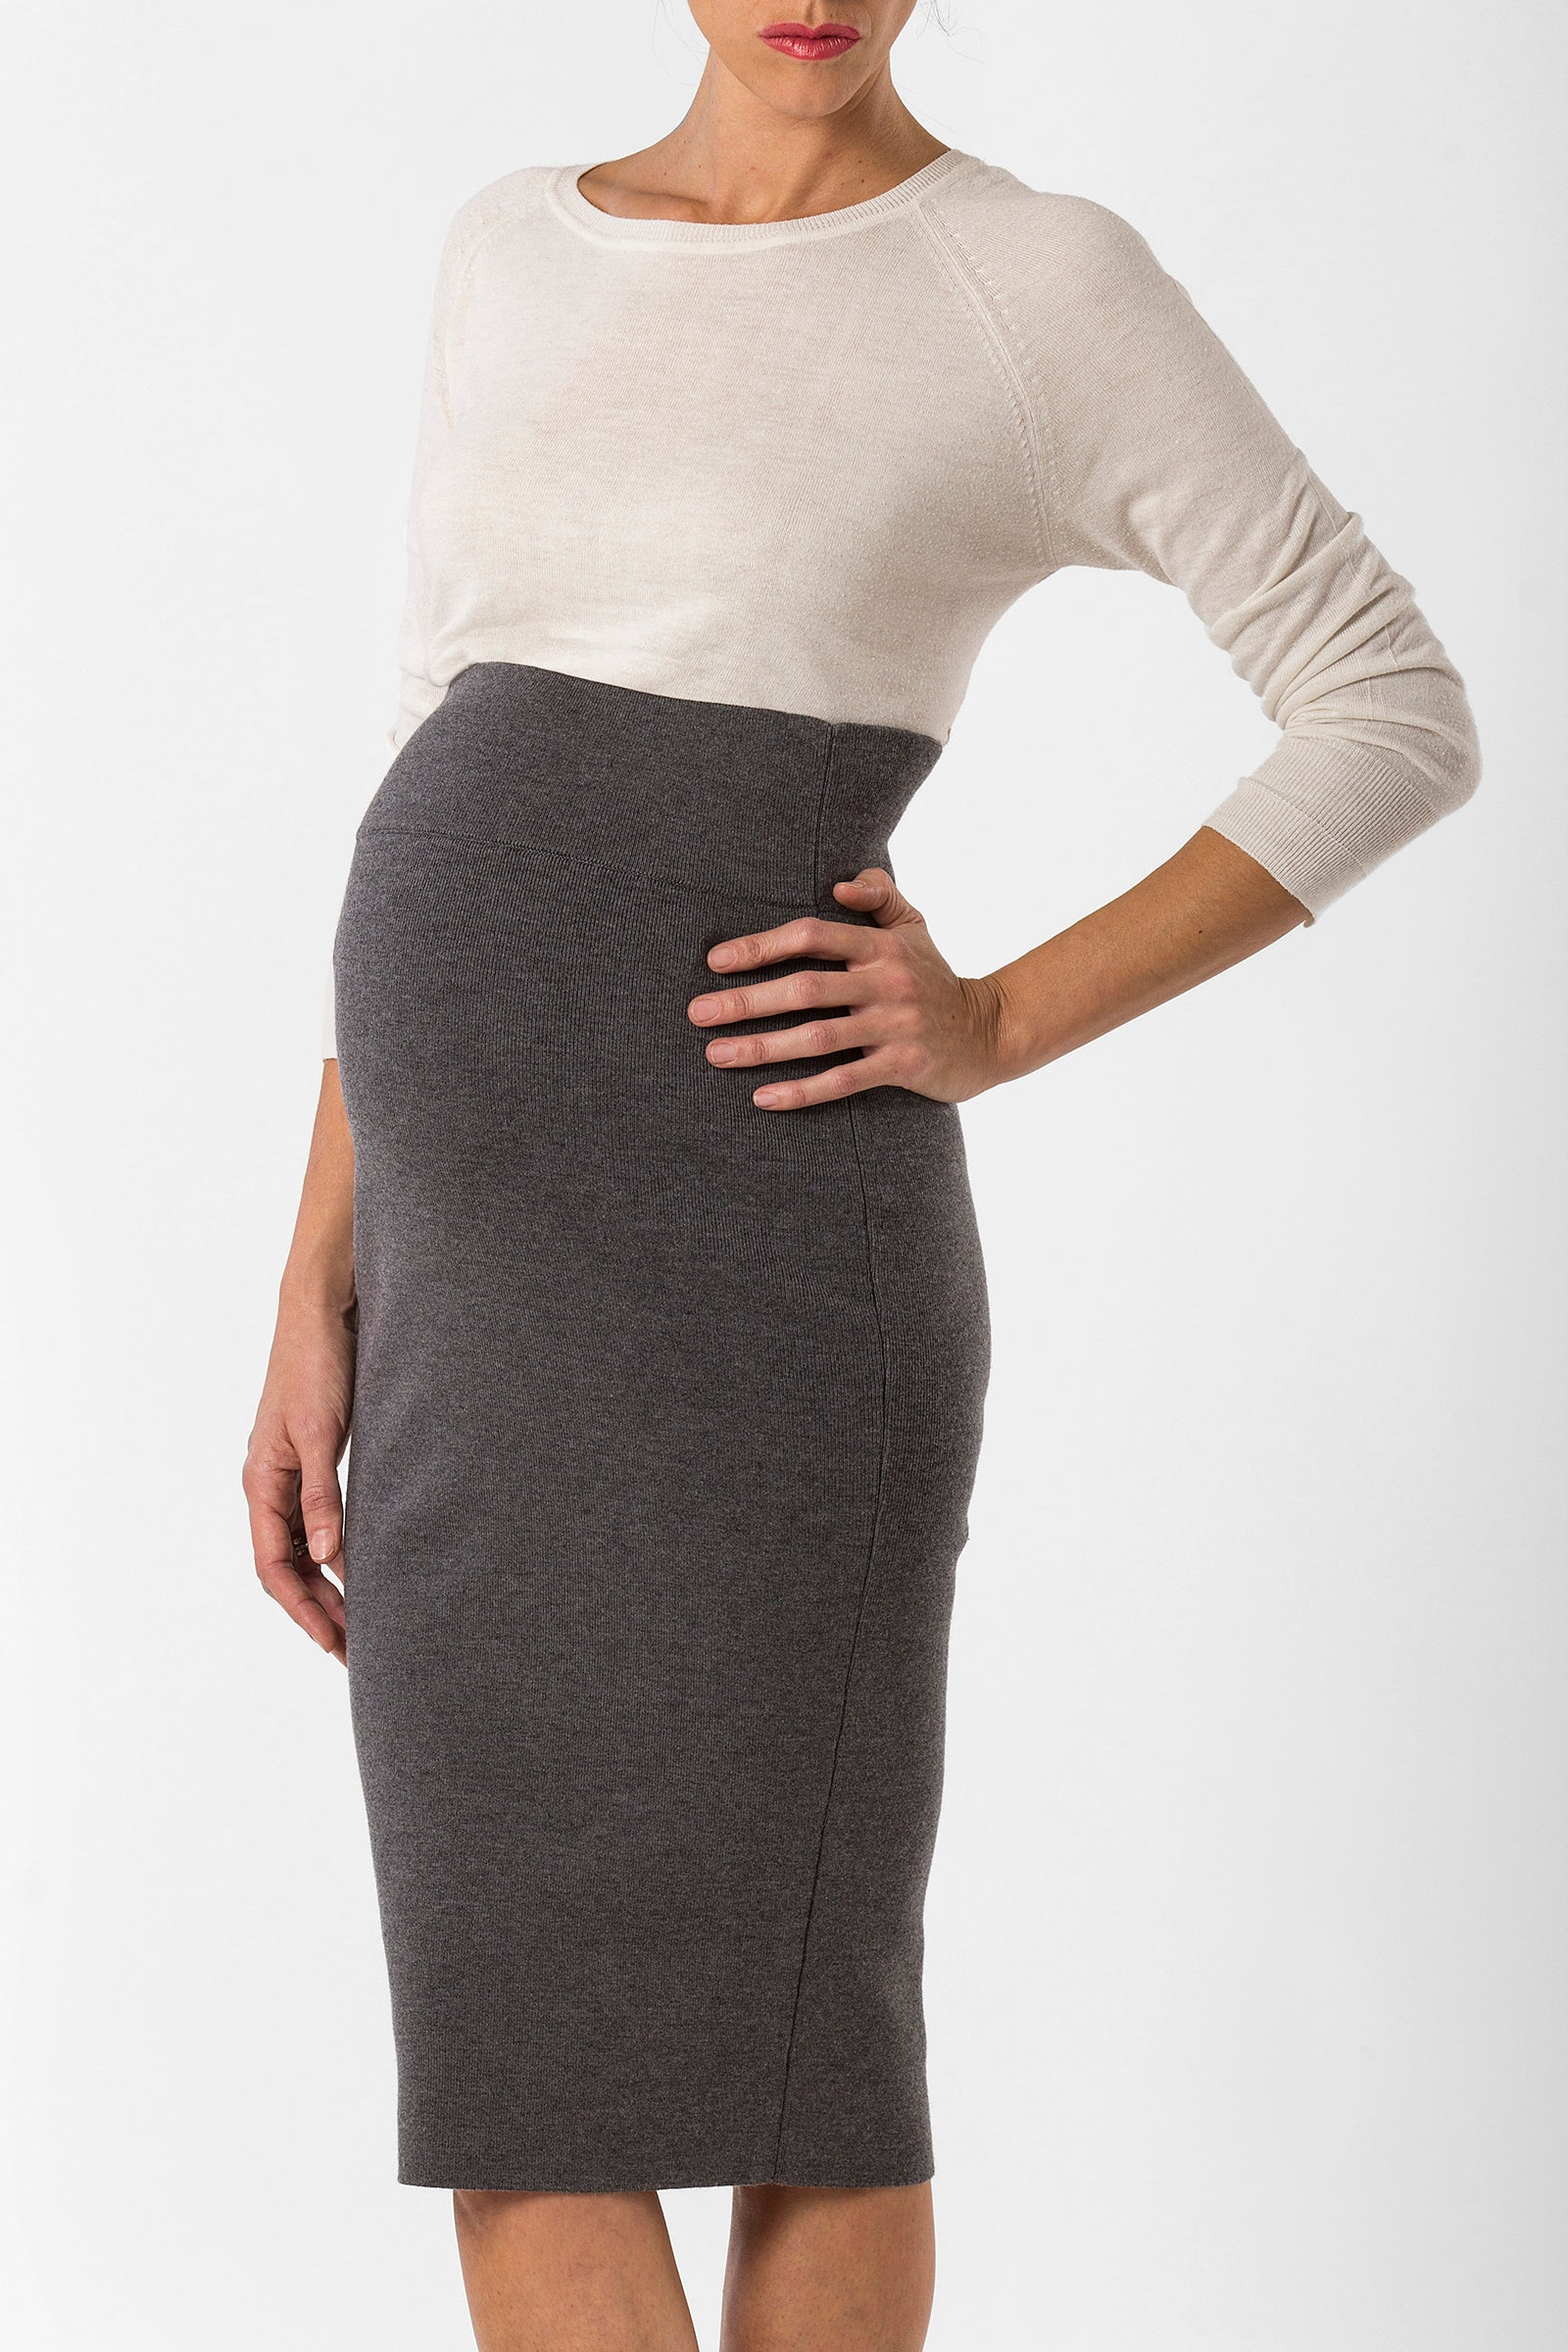 ada skirt - high waisted breastfeeding skirt - grey